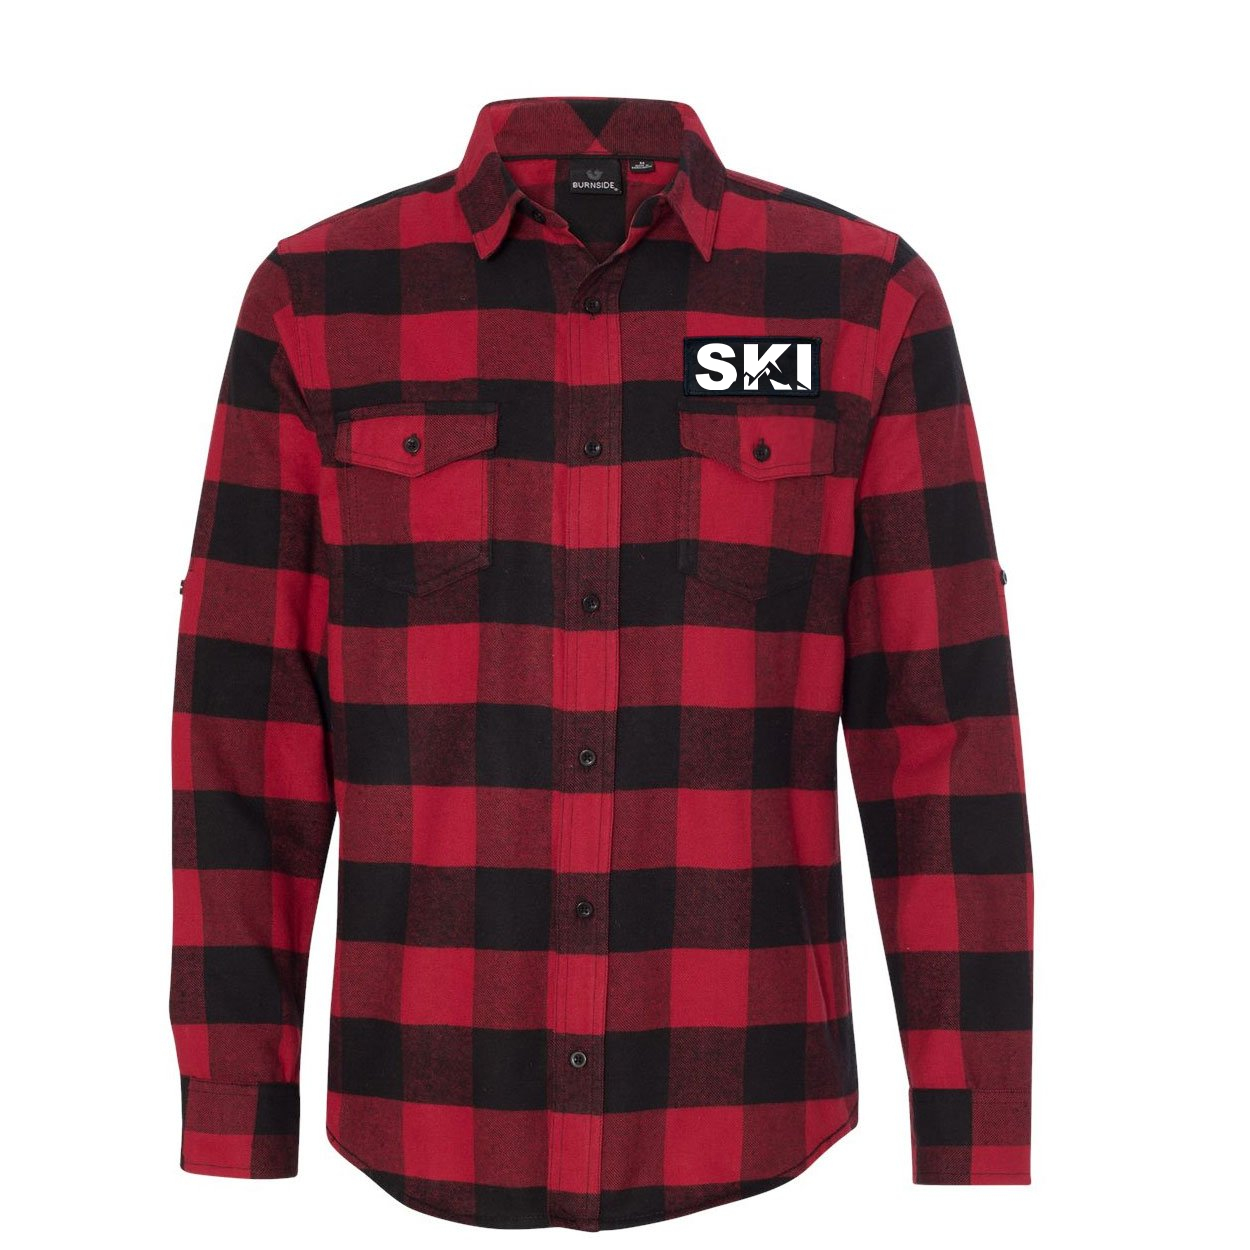 Ski Mountain Logo Classic Unisex Long Sleeve Woven Patch Flannel Shirt Red/Black Buffalo (White Logo)